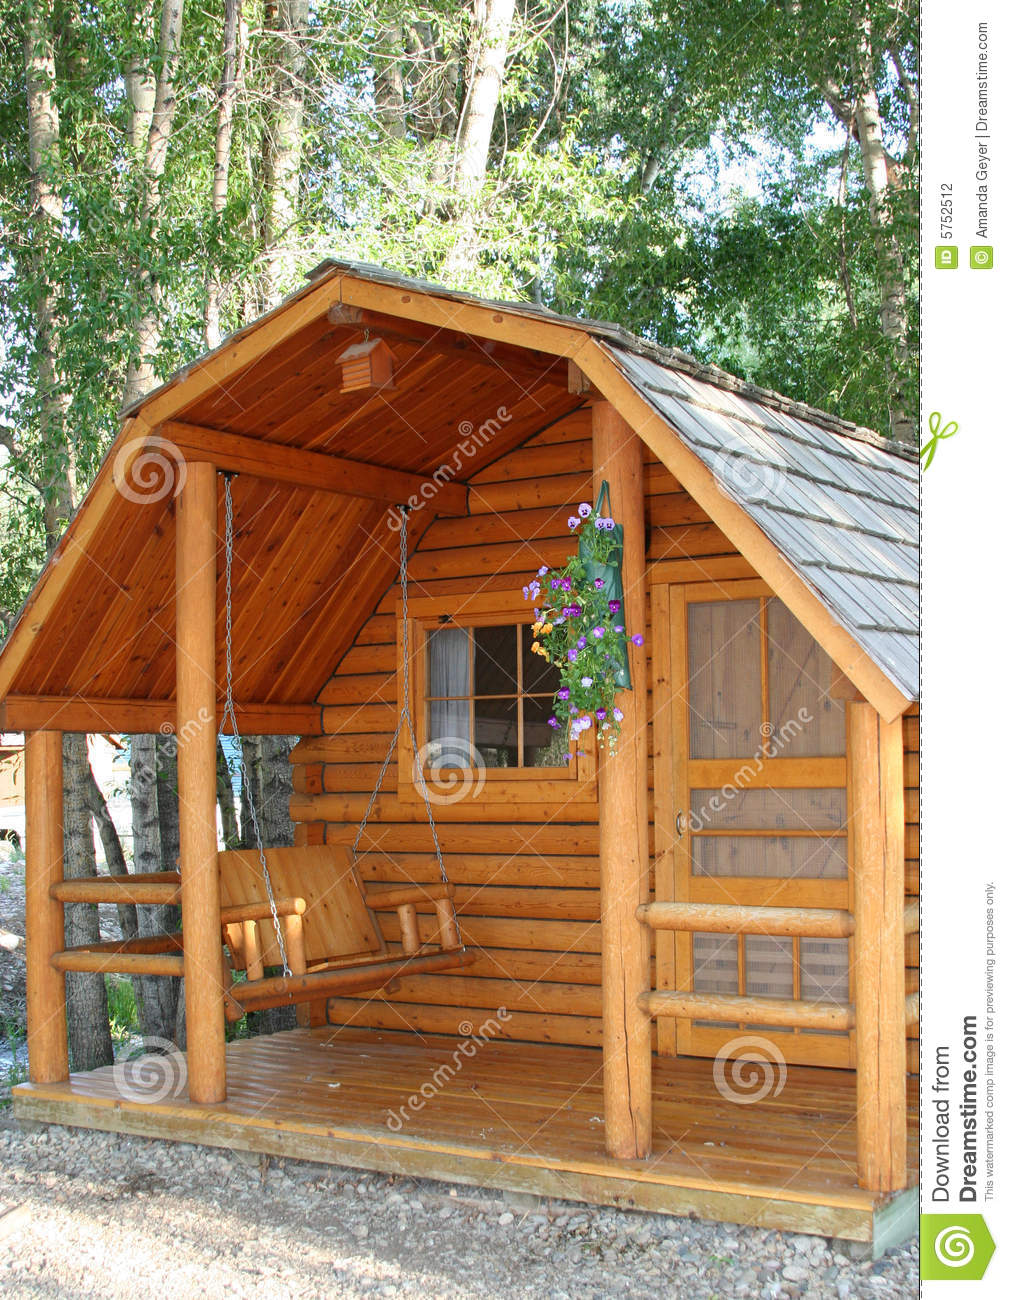 Small wood cabin stock photo image of home vacation for Wood cabin homes